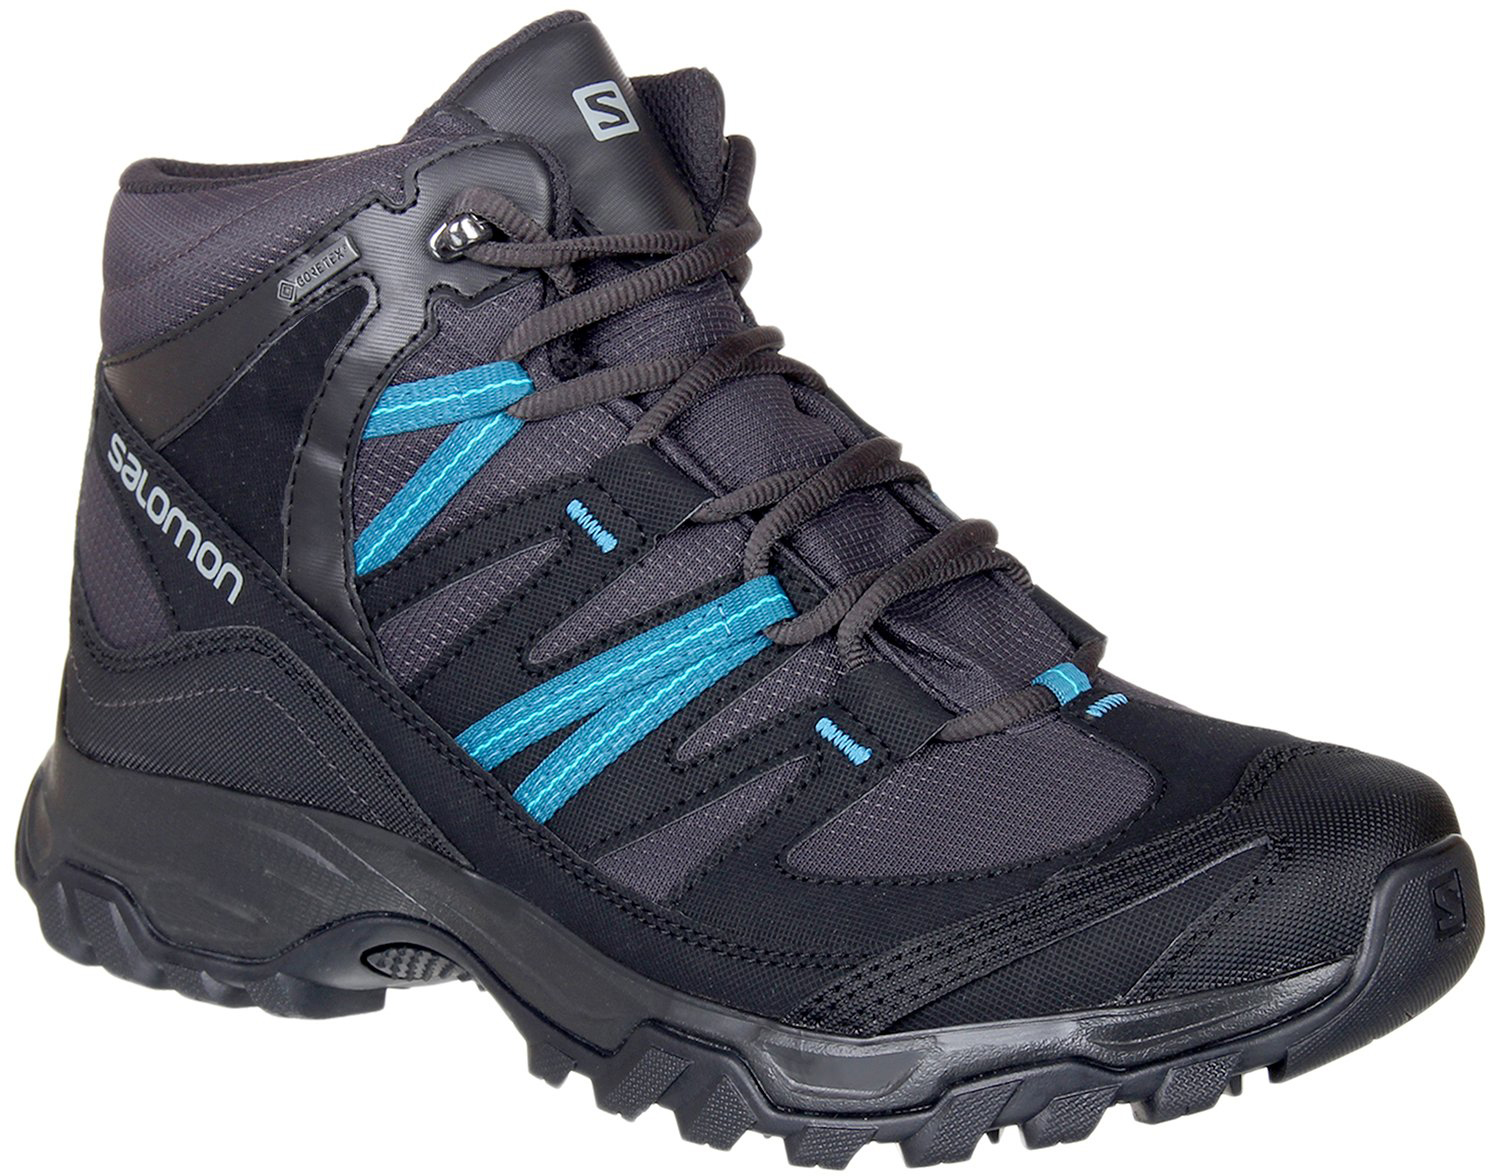 Salomon all products | MEC